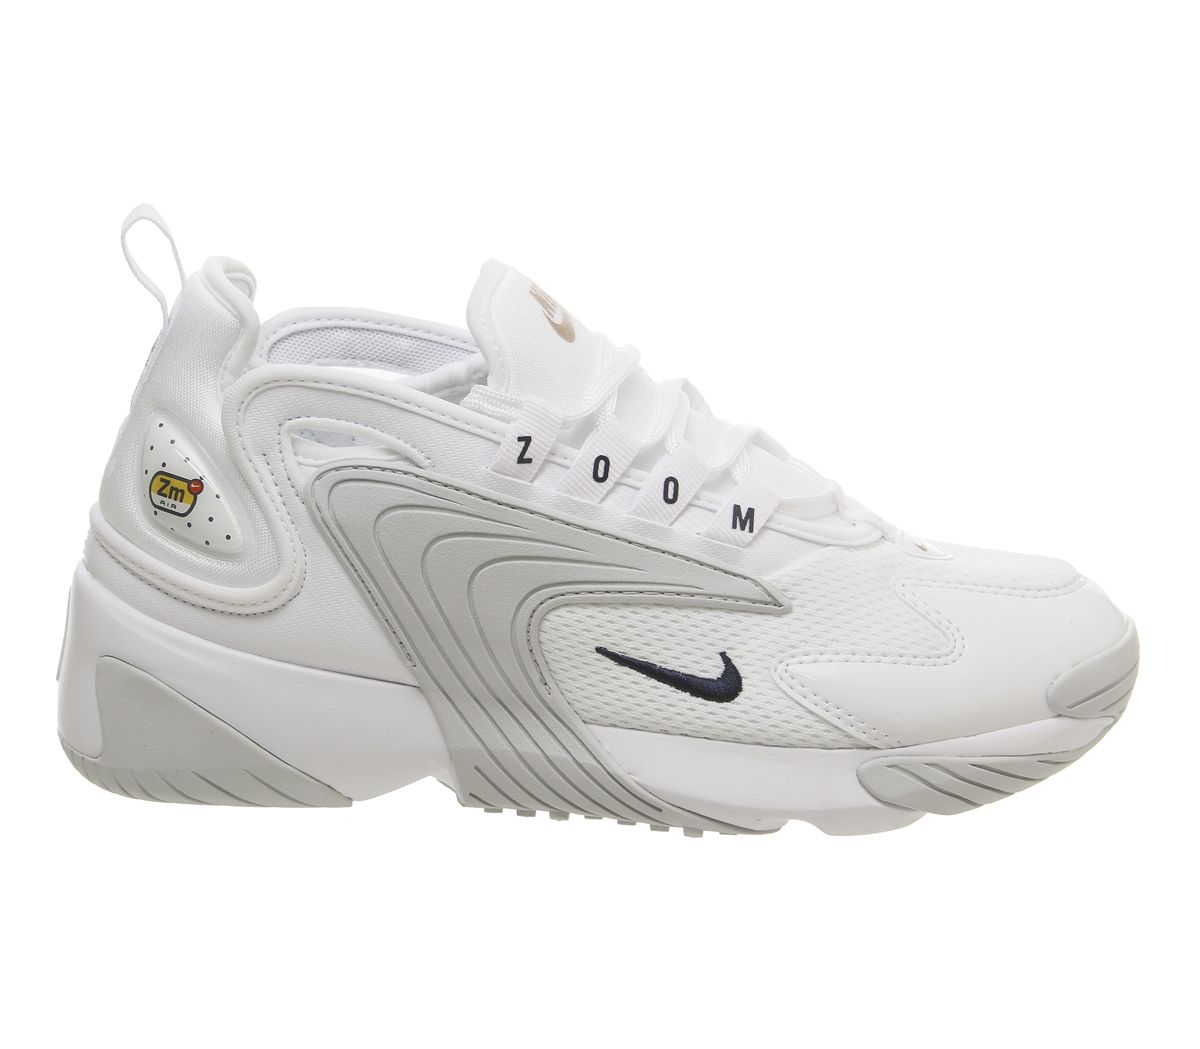 0757c4e7513 Zoom 2k Trainers